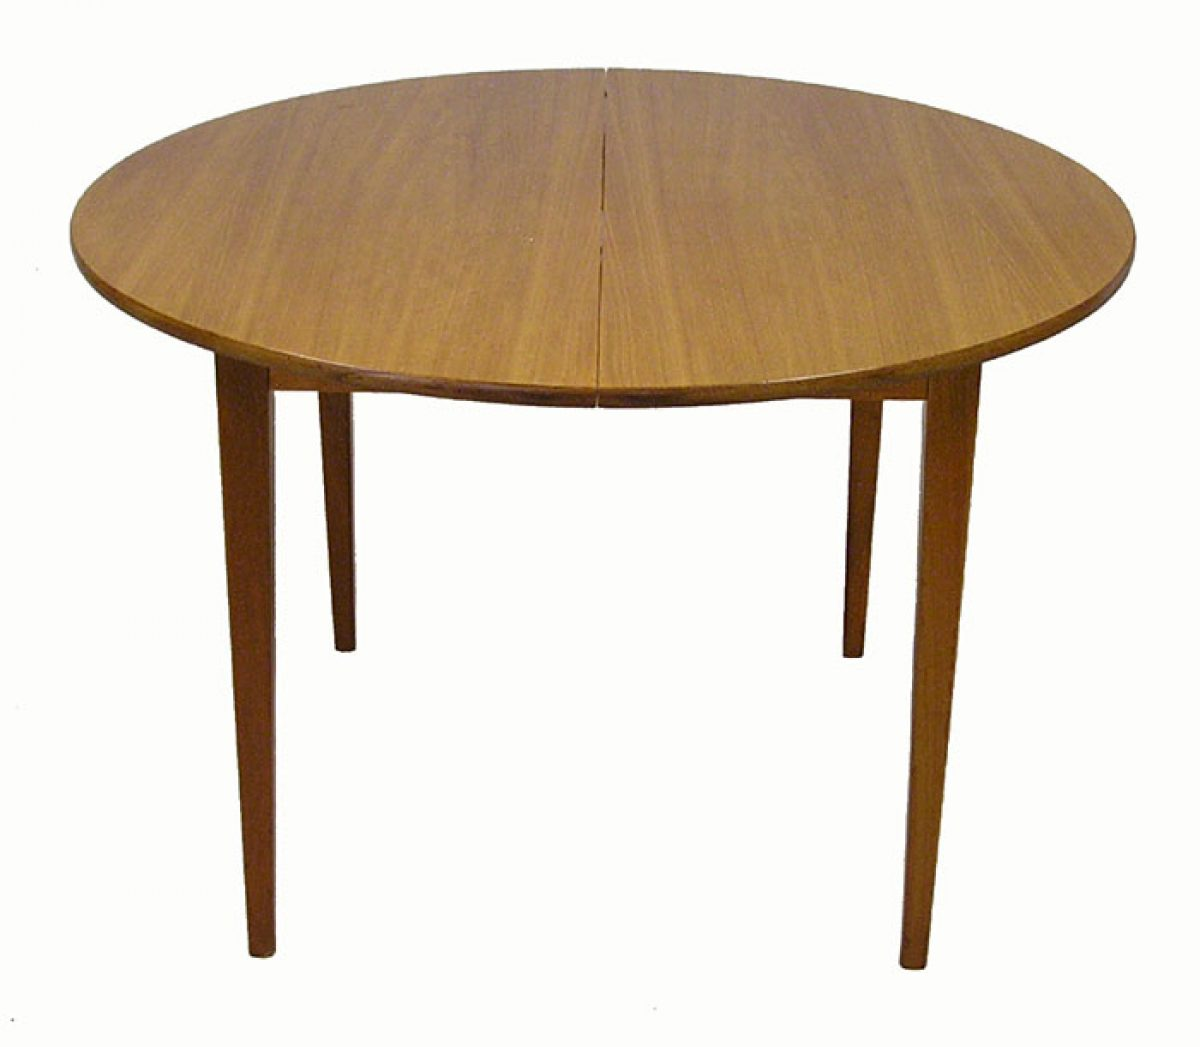 1960 70s Round Teak Dining Table Hoopers Modern